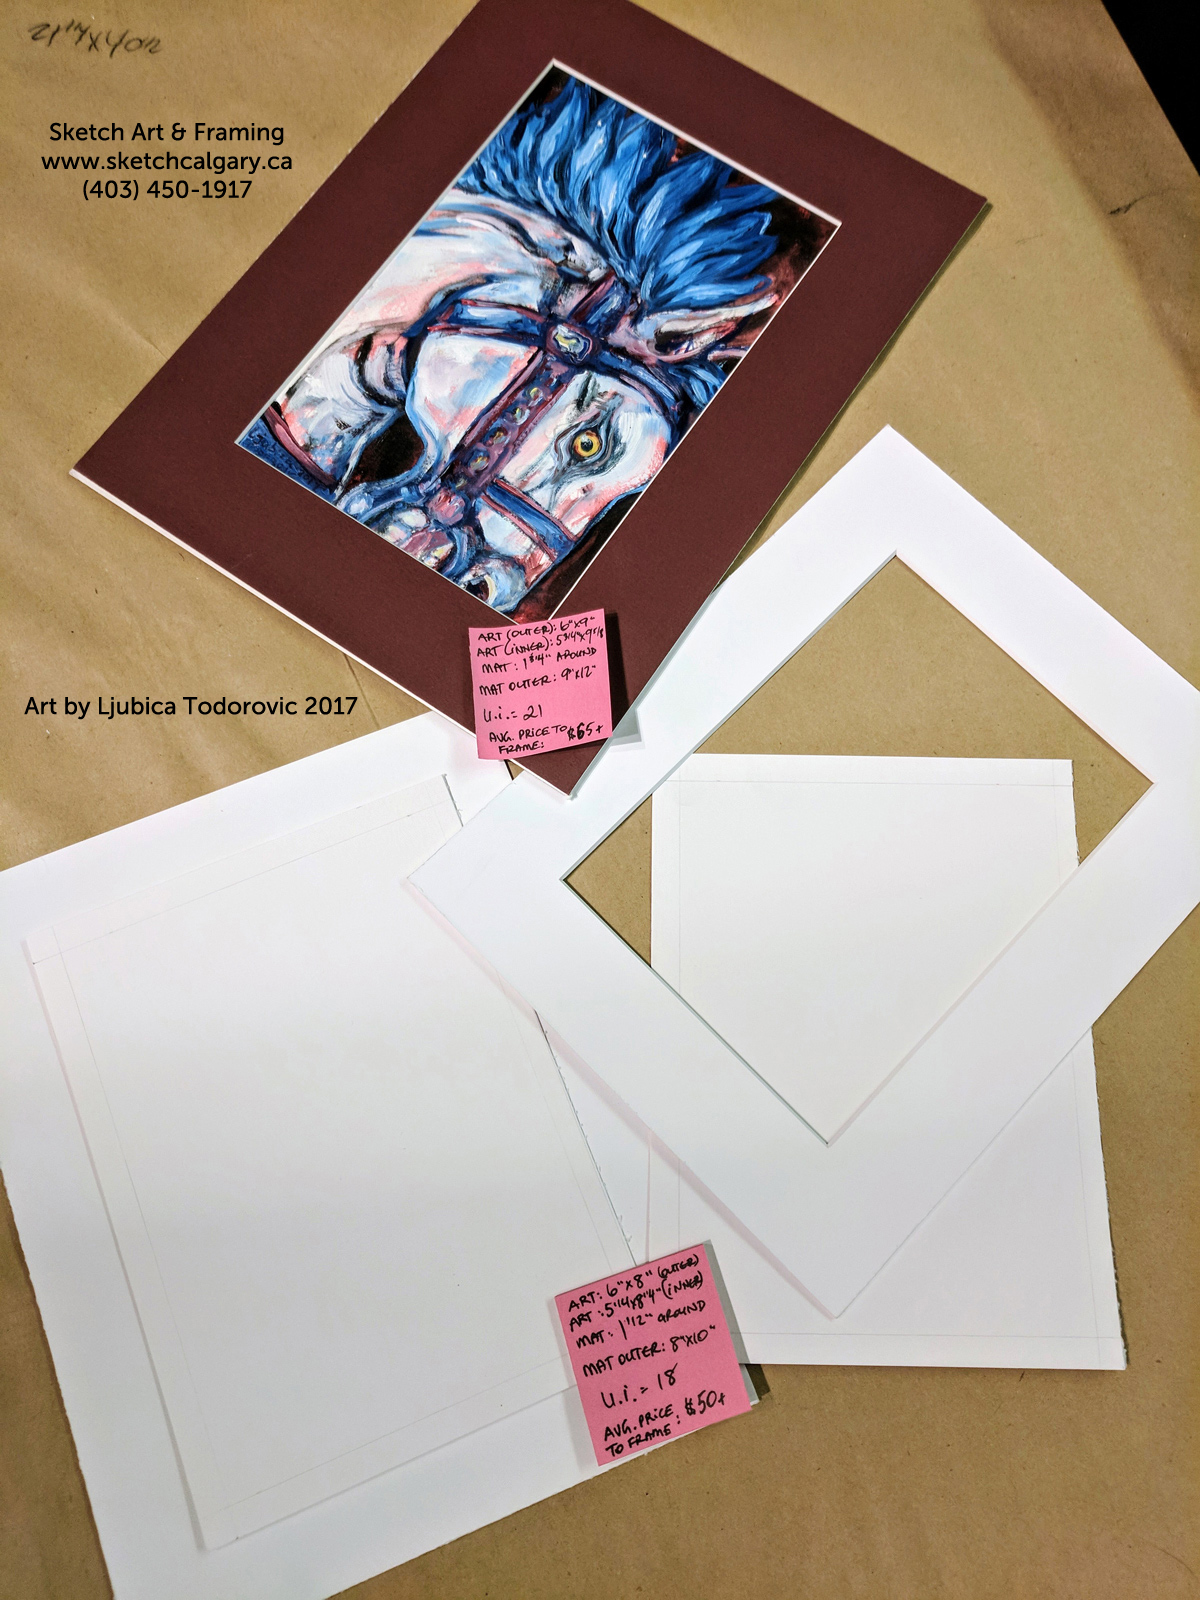 Planning artwork size for matting sketch art framing i will give two example price outcomes in this post one will be an already completed artwork which fits into a 9x12 mat and the other is a planned solutioingenieria Choice Image